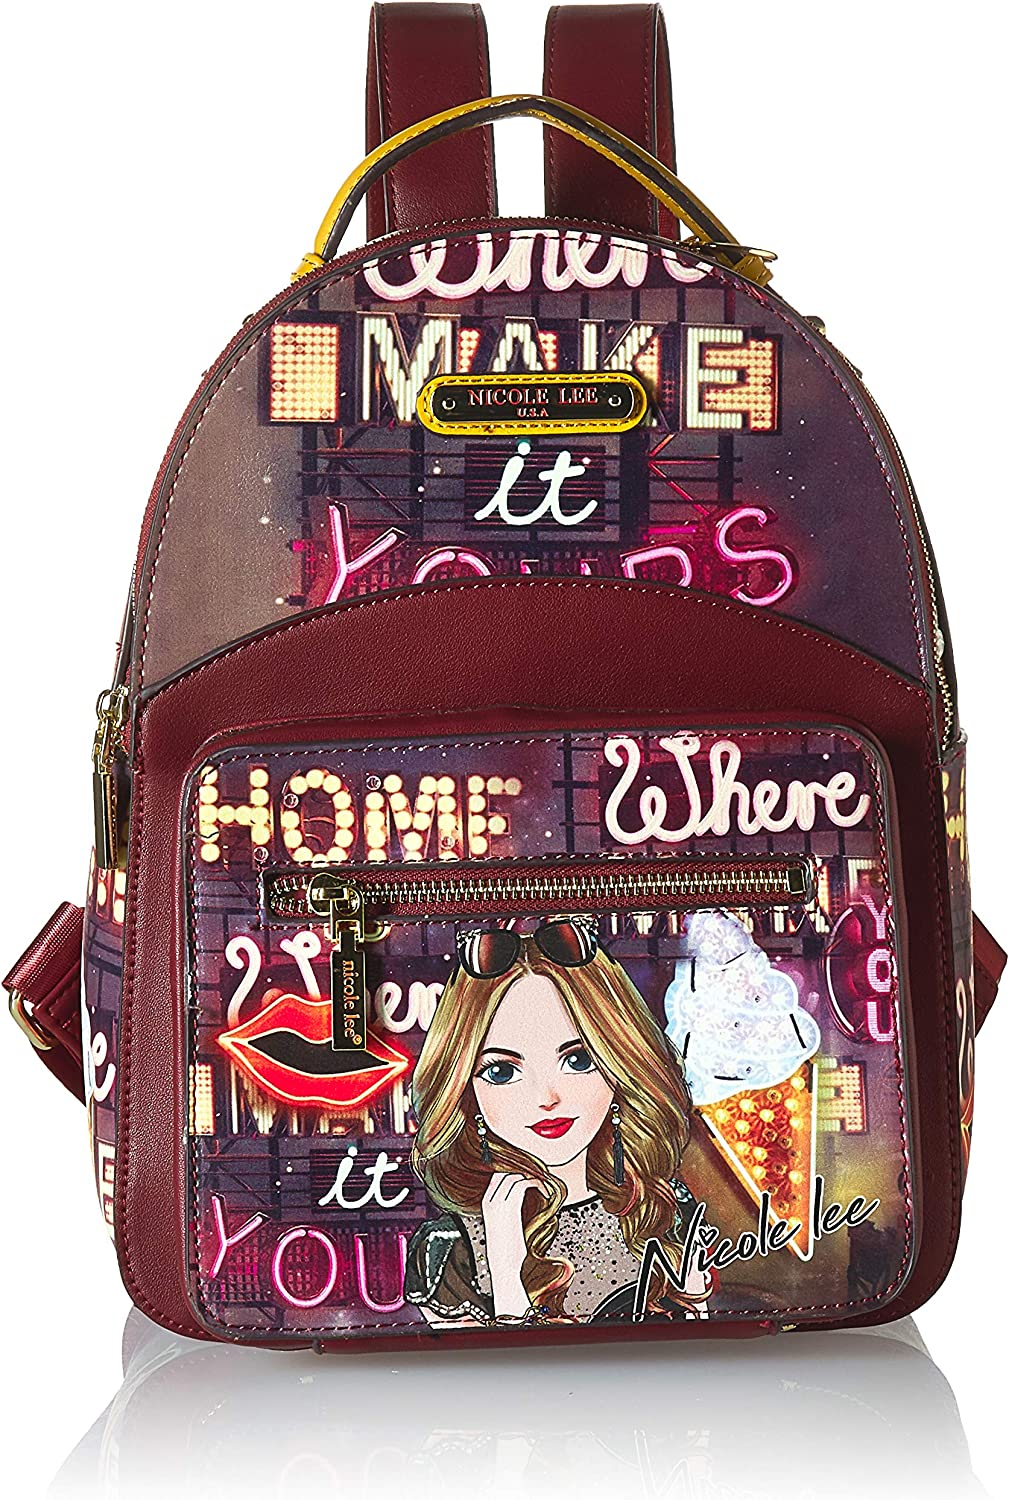 Nicole Lee Women's Adeen Smart Lunch Vol. 2 Backpack, Girl's Night Out, One Size